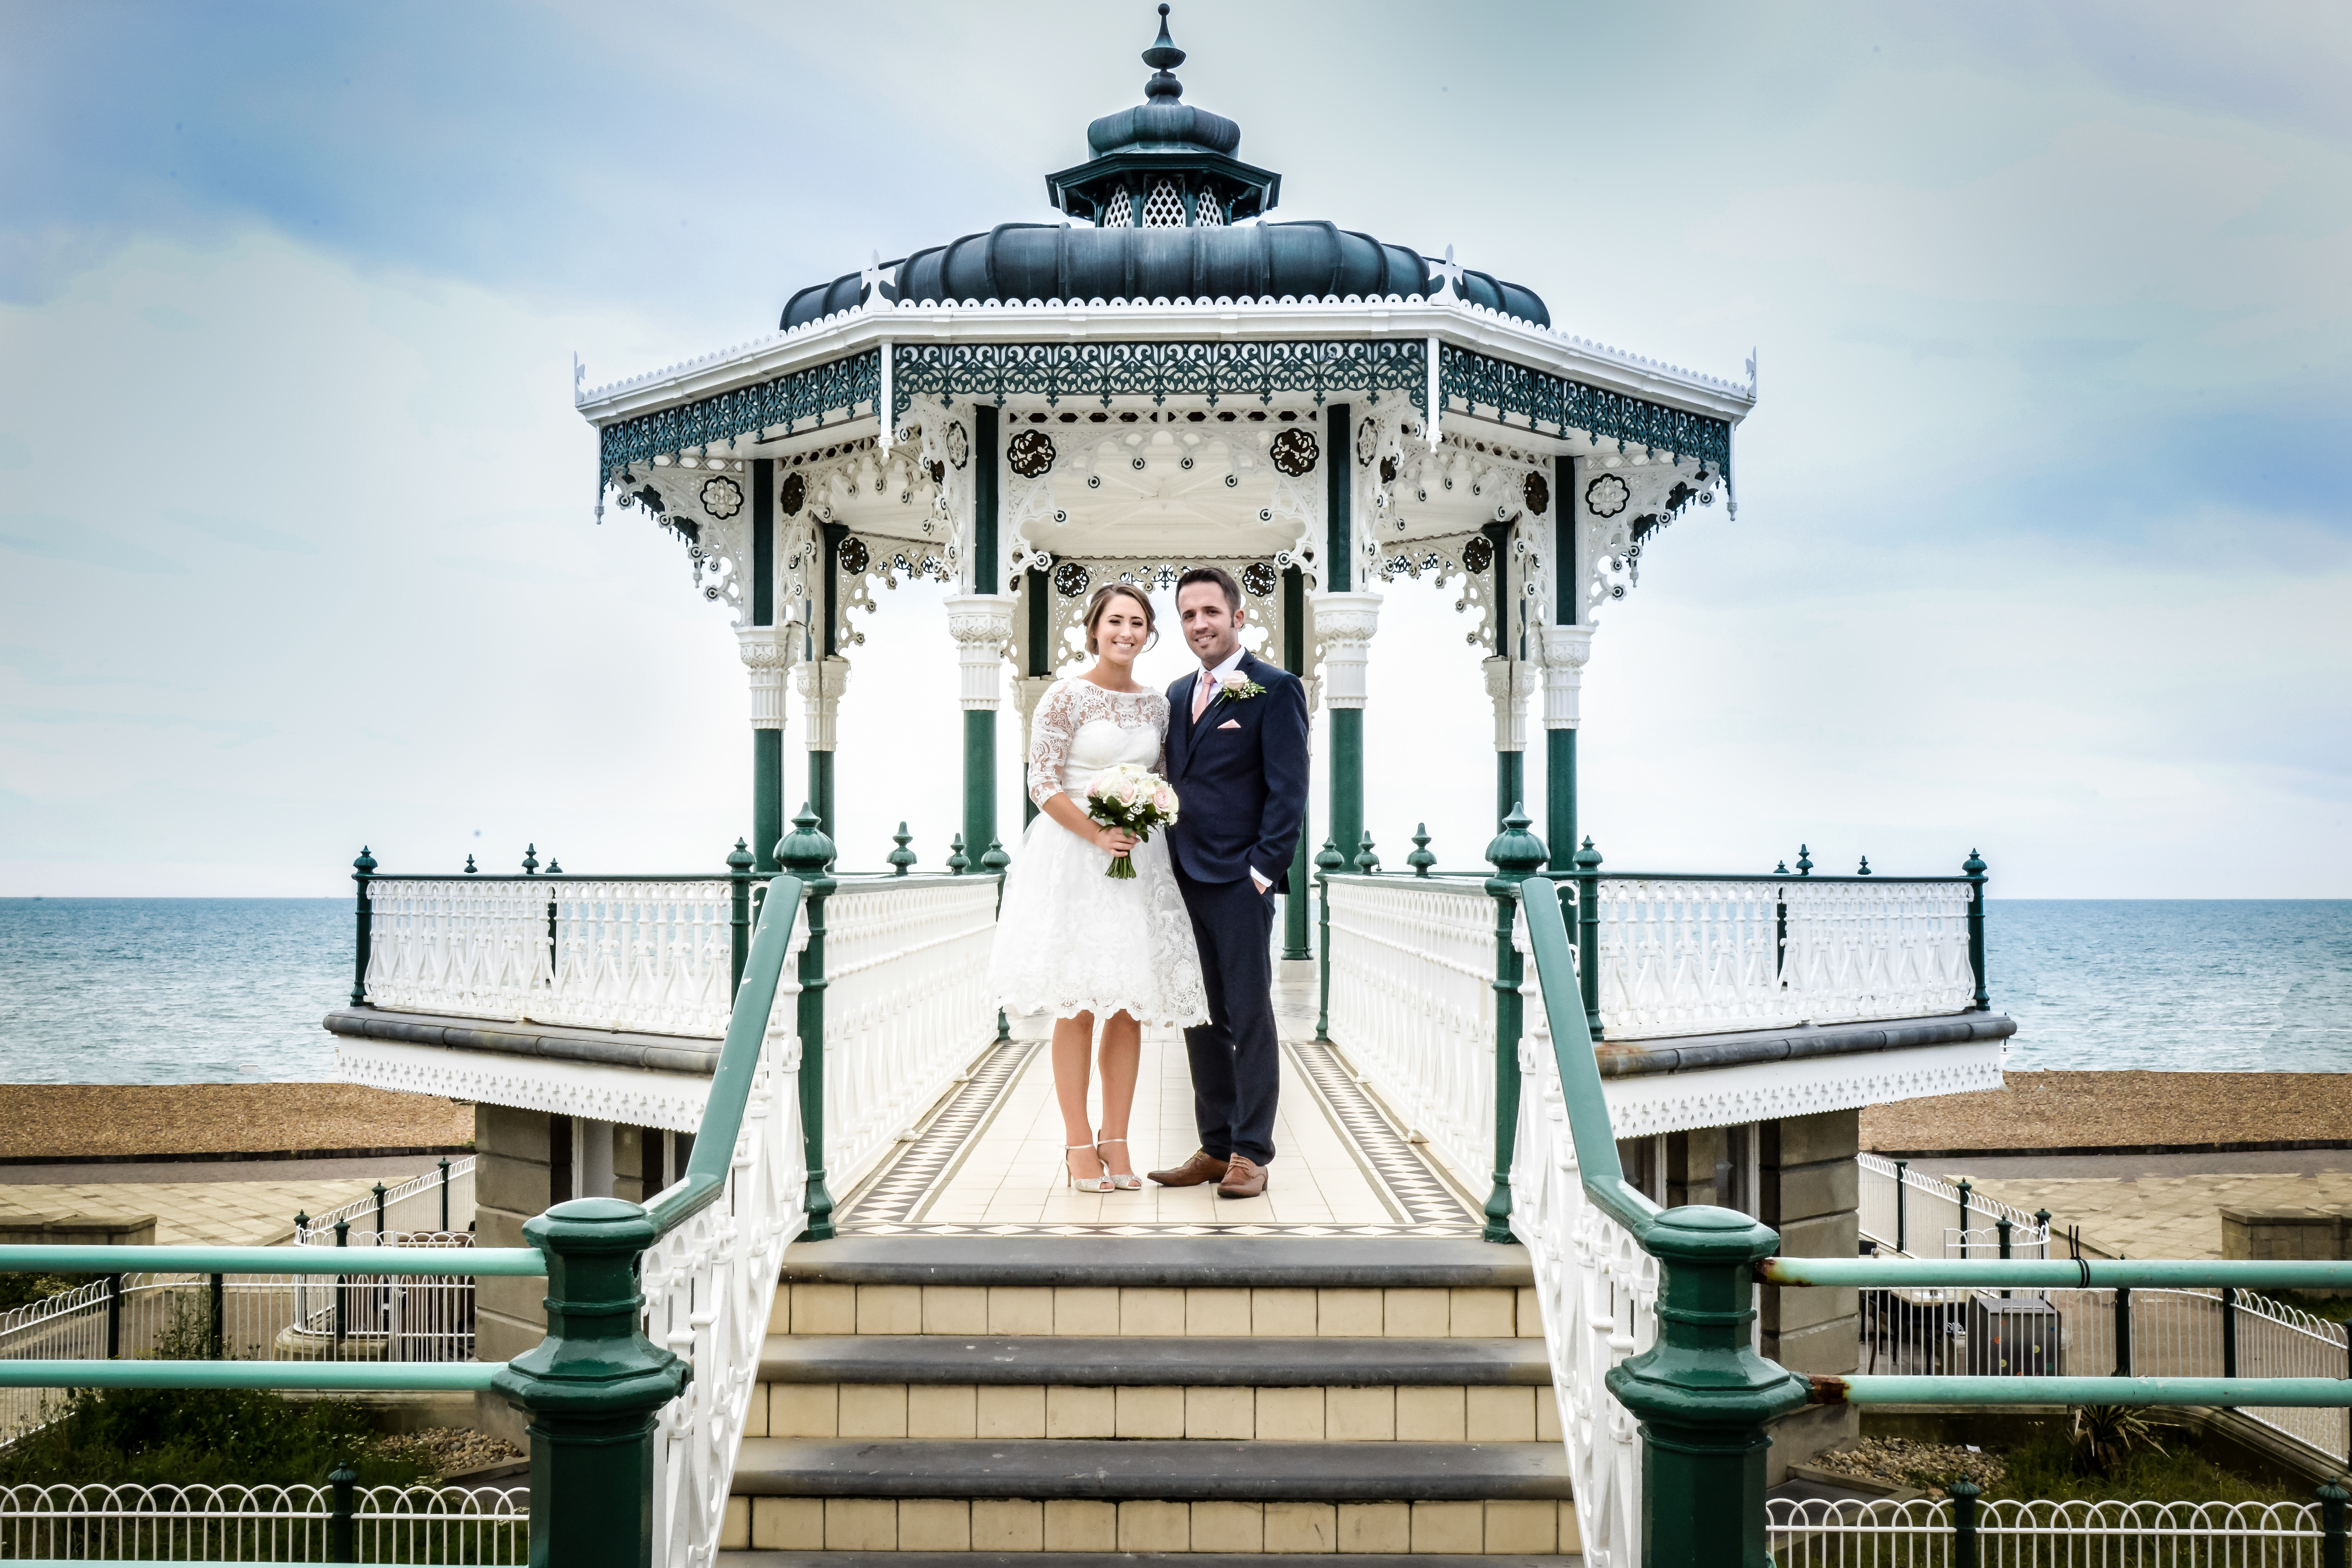 FIZZY ROBOT PHOTOGRAPHY - Kat & Dave Wedding Teasers_FRJ7506